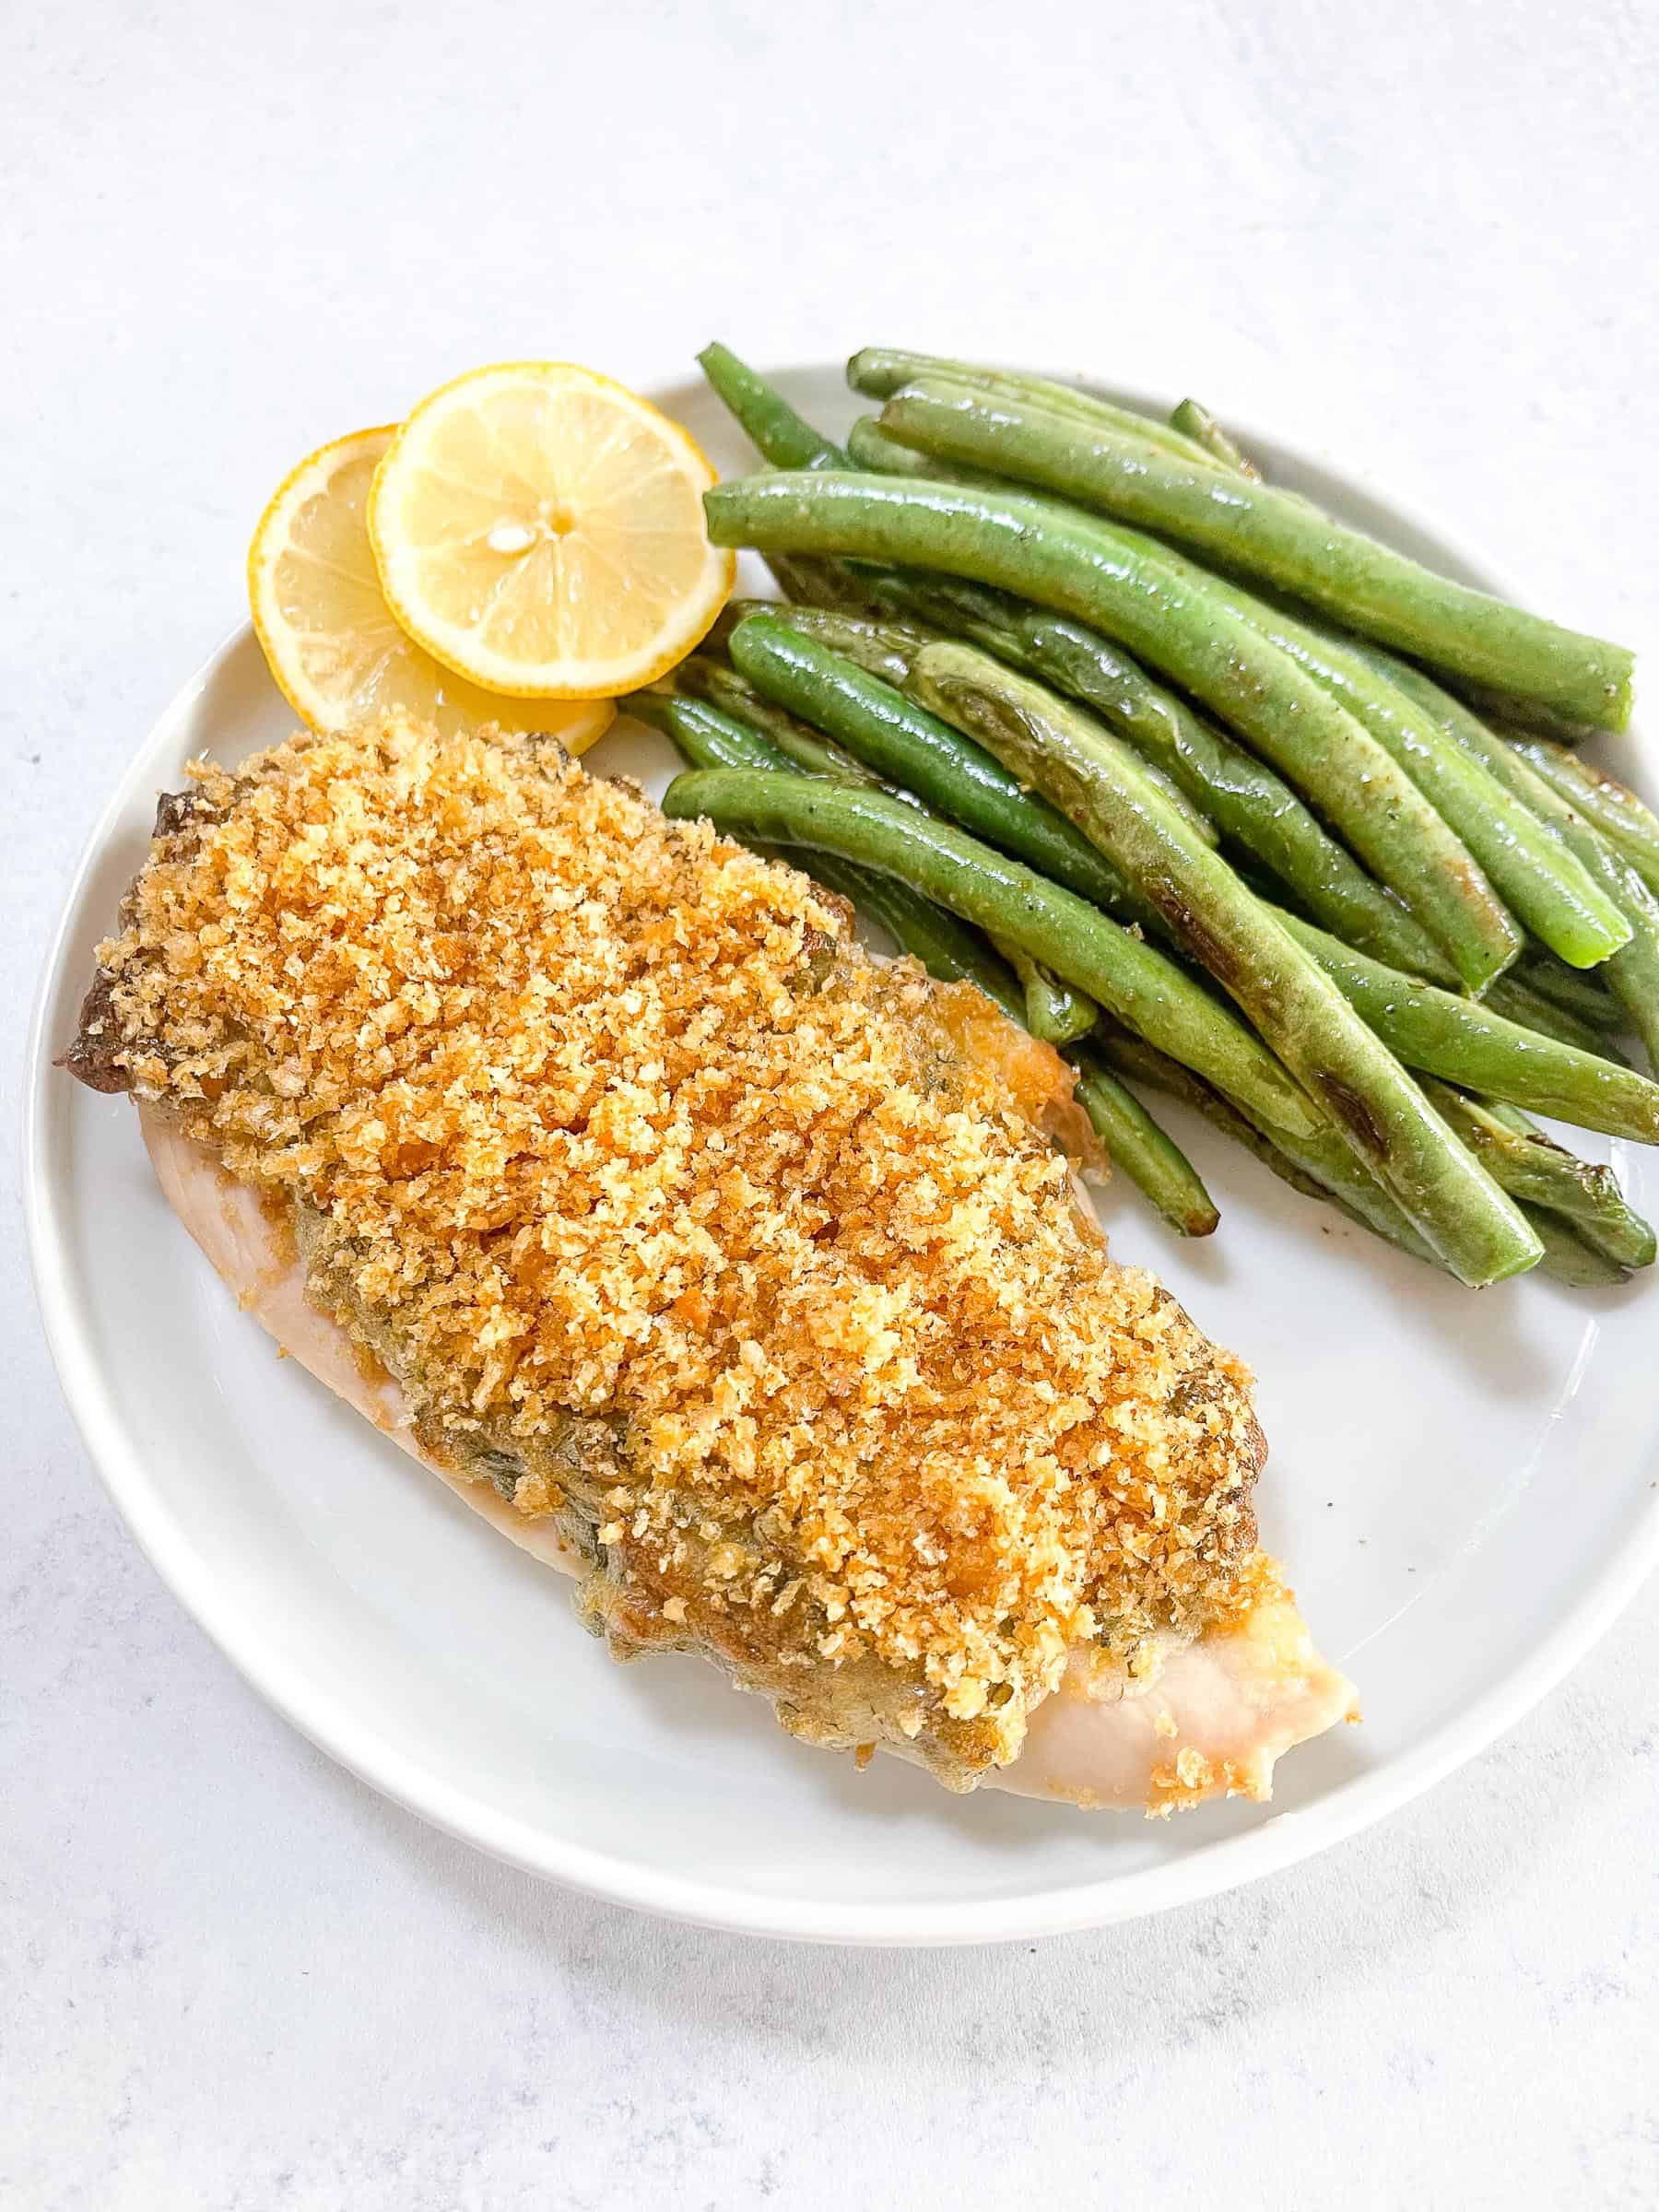 keto crispy ranch chicken with green beans and lemon garnish on a white plate with a white background